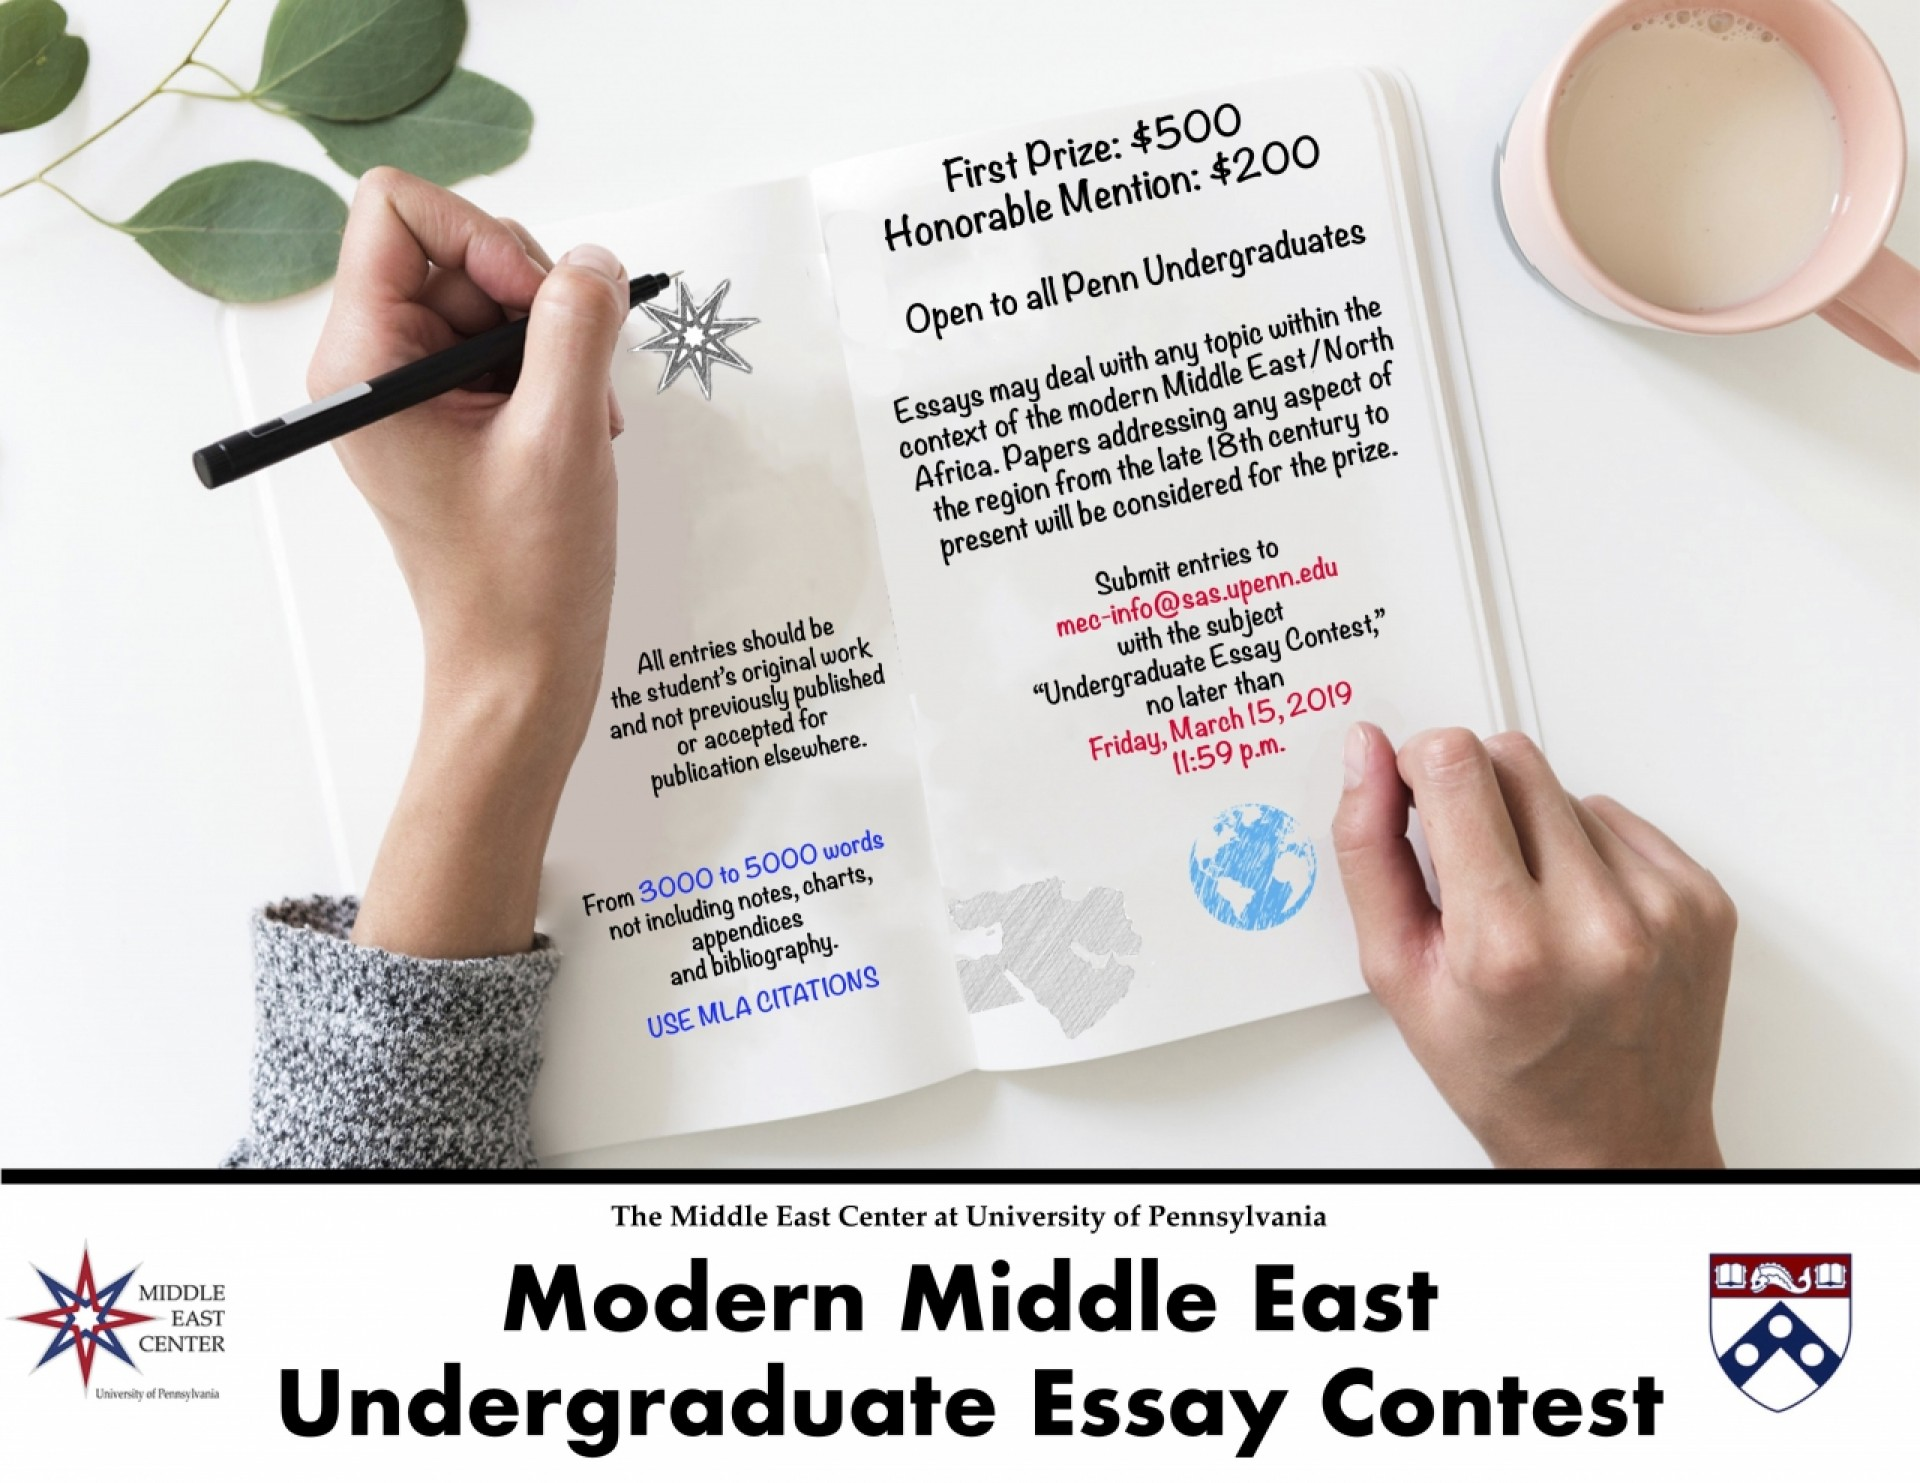 009 Essay Example Undergradessaycontest Remarkable Upenn Prompt 2018 College Confidential 1920